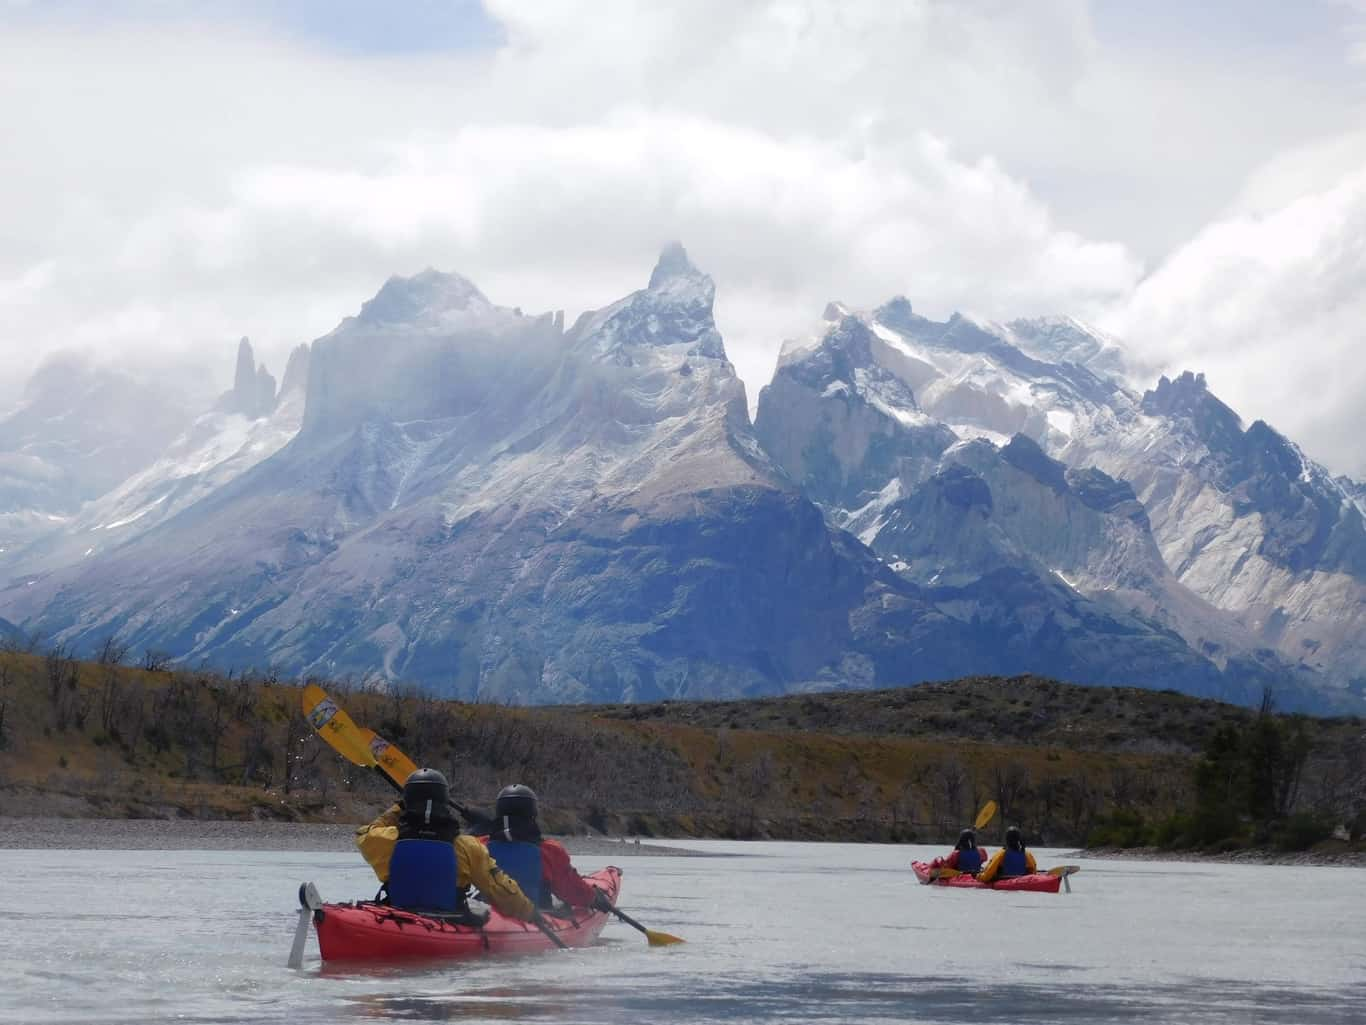 Route of the Parks of Patagonia: Kayaking in between Blue Icebergs in Torres del Paine